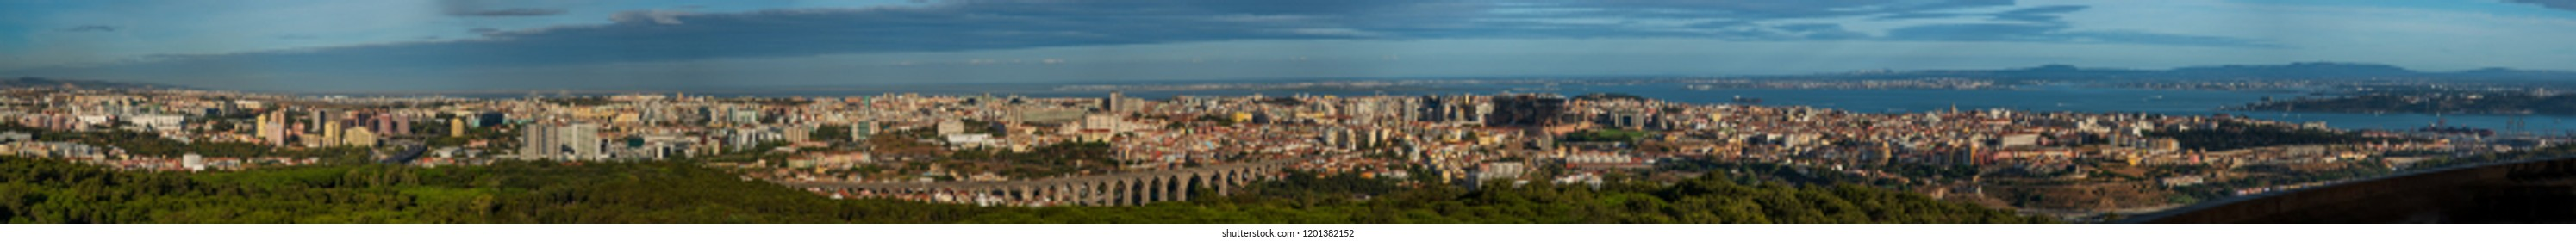 Lisbon Portugal. 12 October 2018. Extreme Panorama of Lisbon from Monsanto Viewpoint. Monsanto Viewpoint was a luxury restaurant until the 90s where was abandoned now it was recovered  as viewpoint